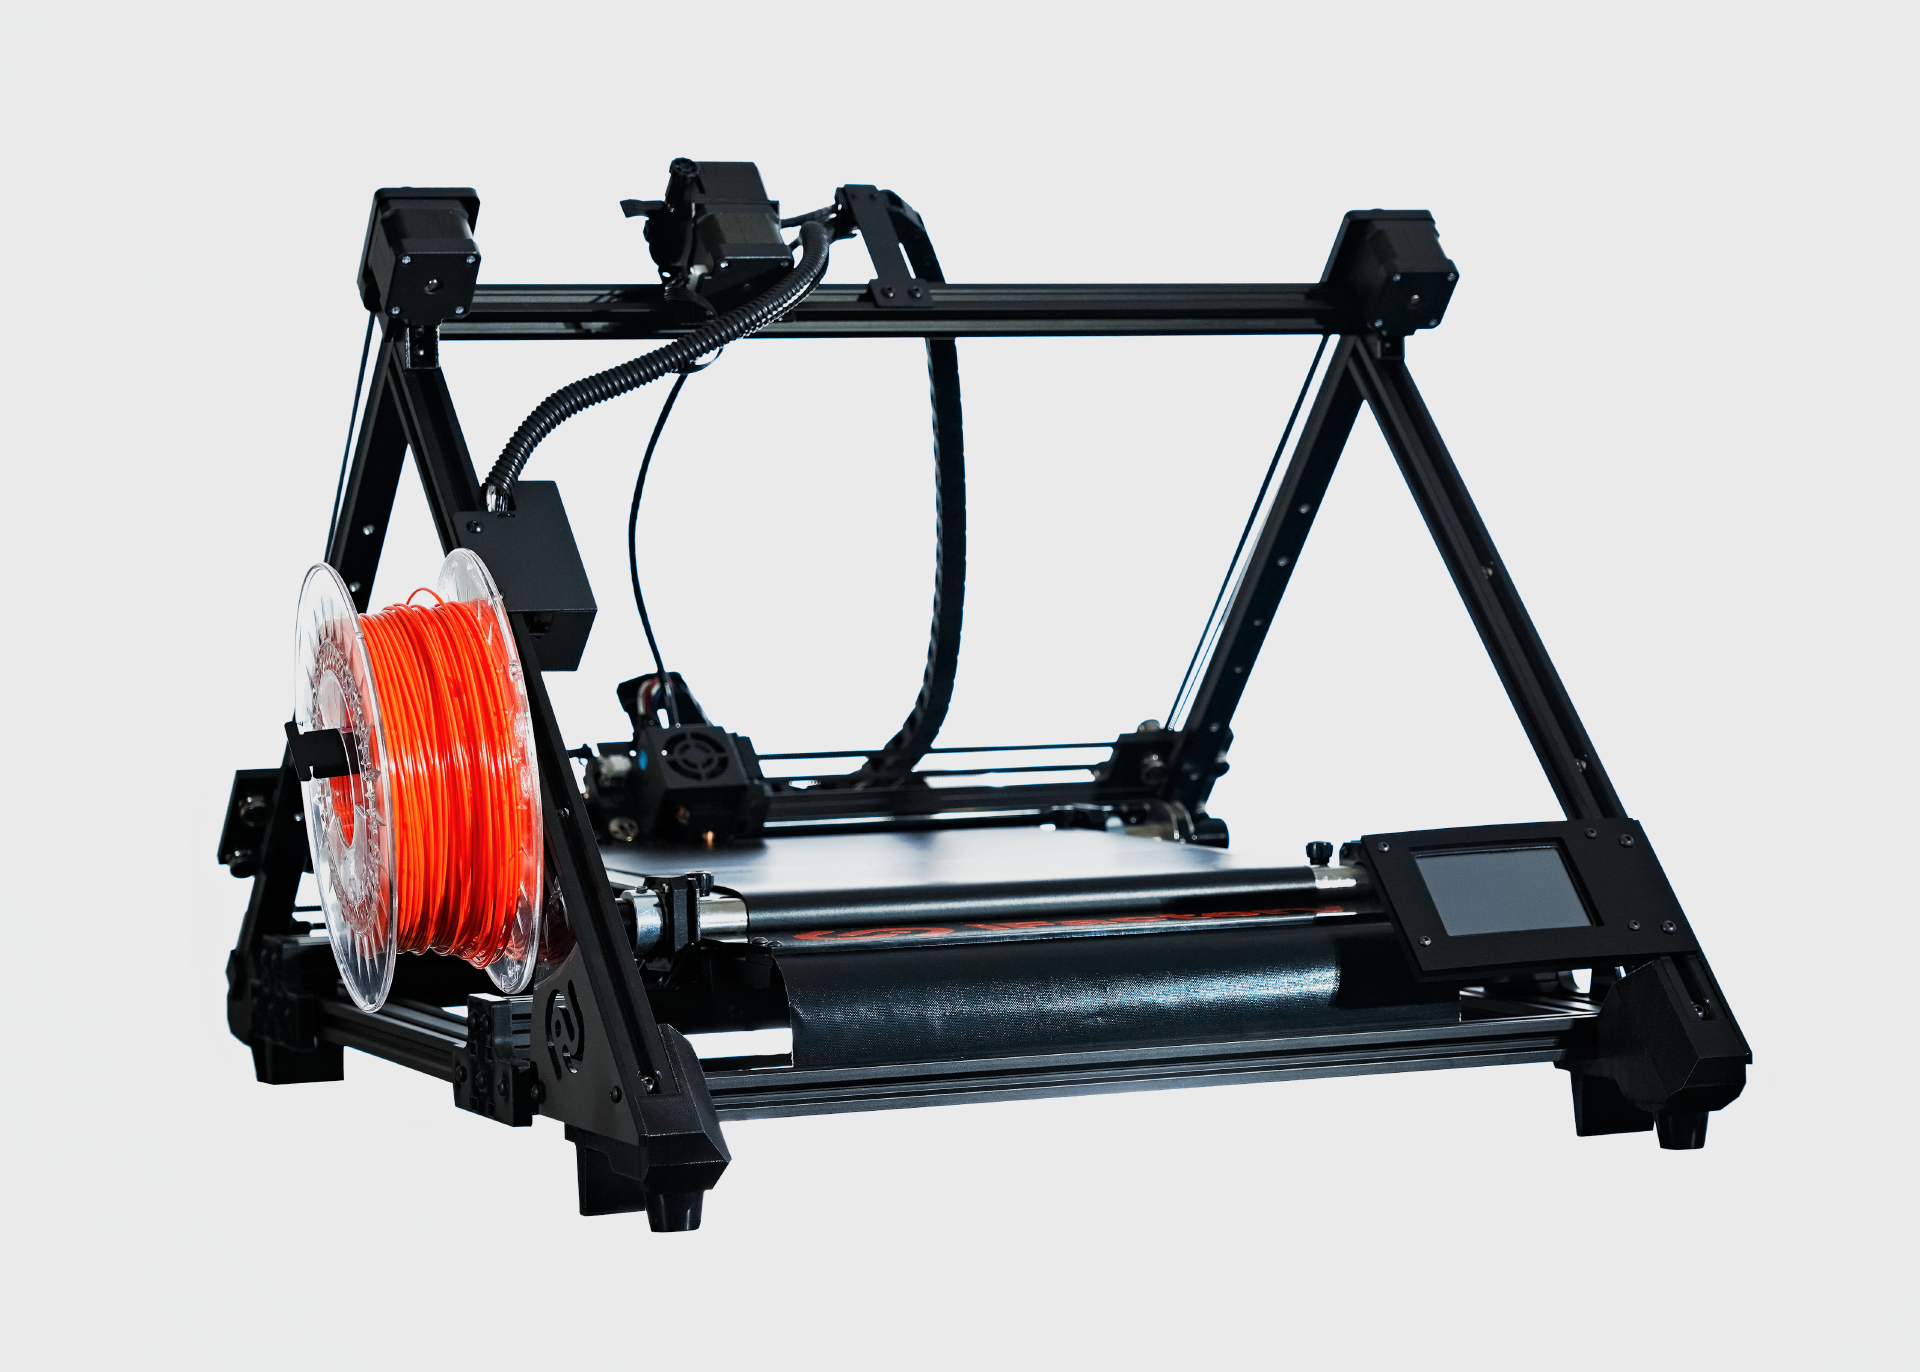 The iFactory One 3D printer. Photo via iFactory3D.